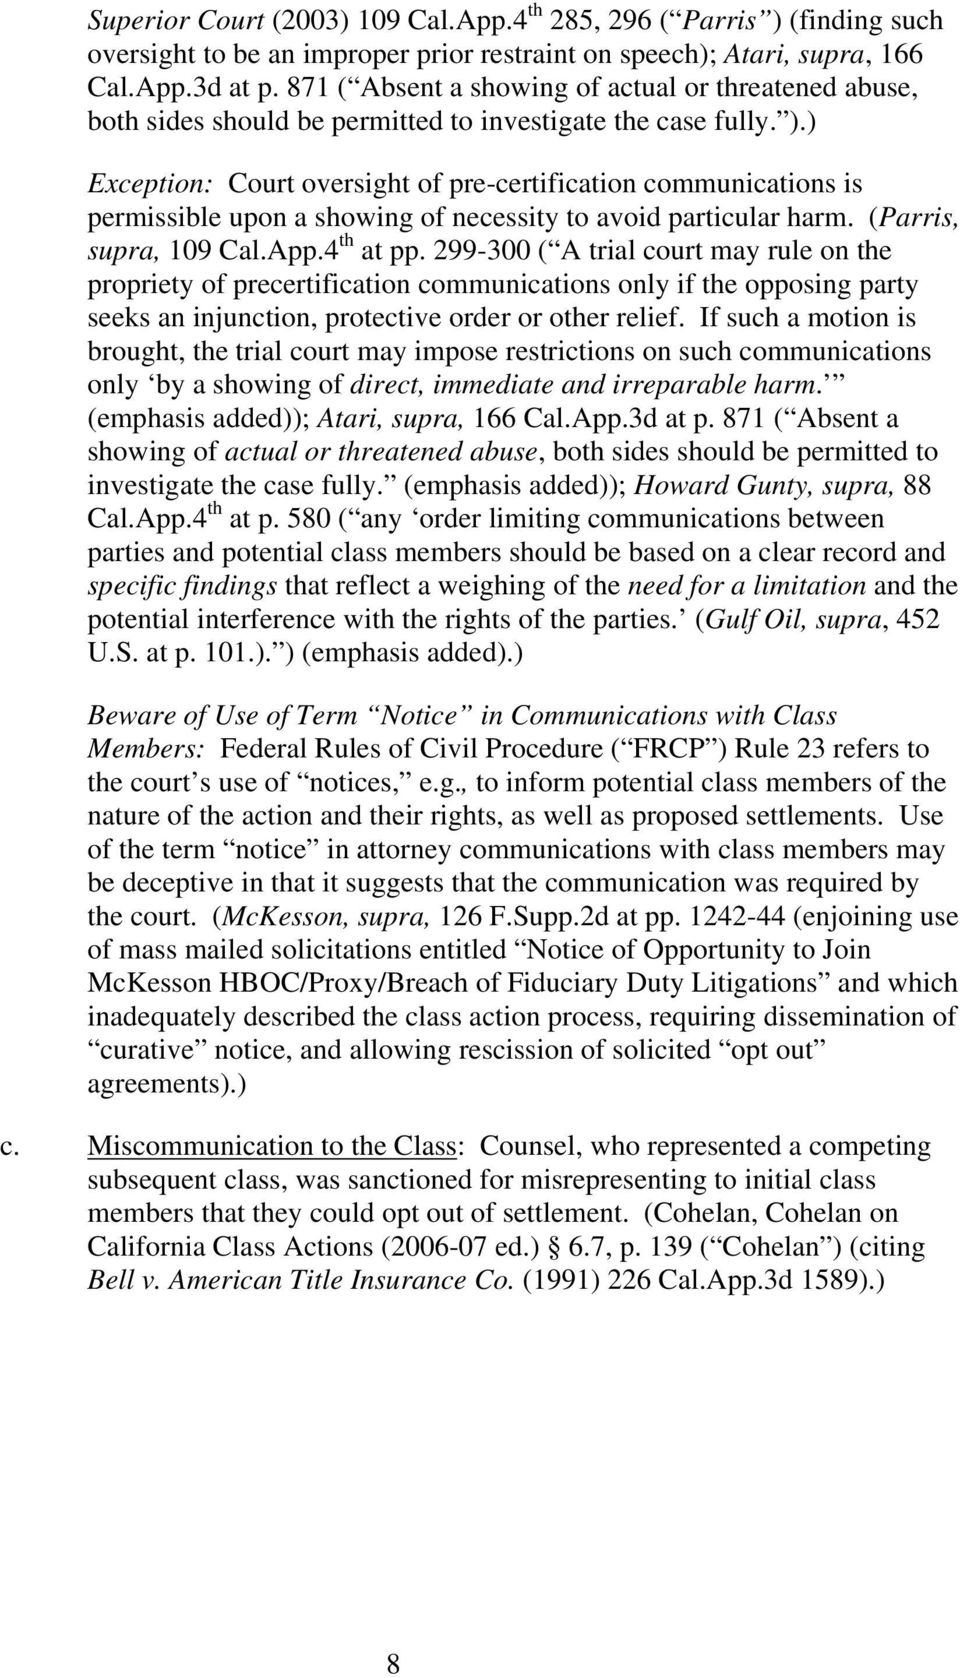 ) Exception: Court oversight of pre-certification communications is permissible upon a showing of necessity to avoid particular harm. (Parris, supra, 109 Cal.App.4 th at pp.